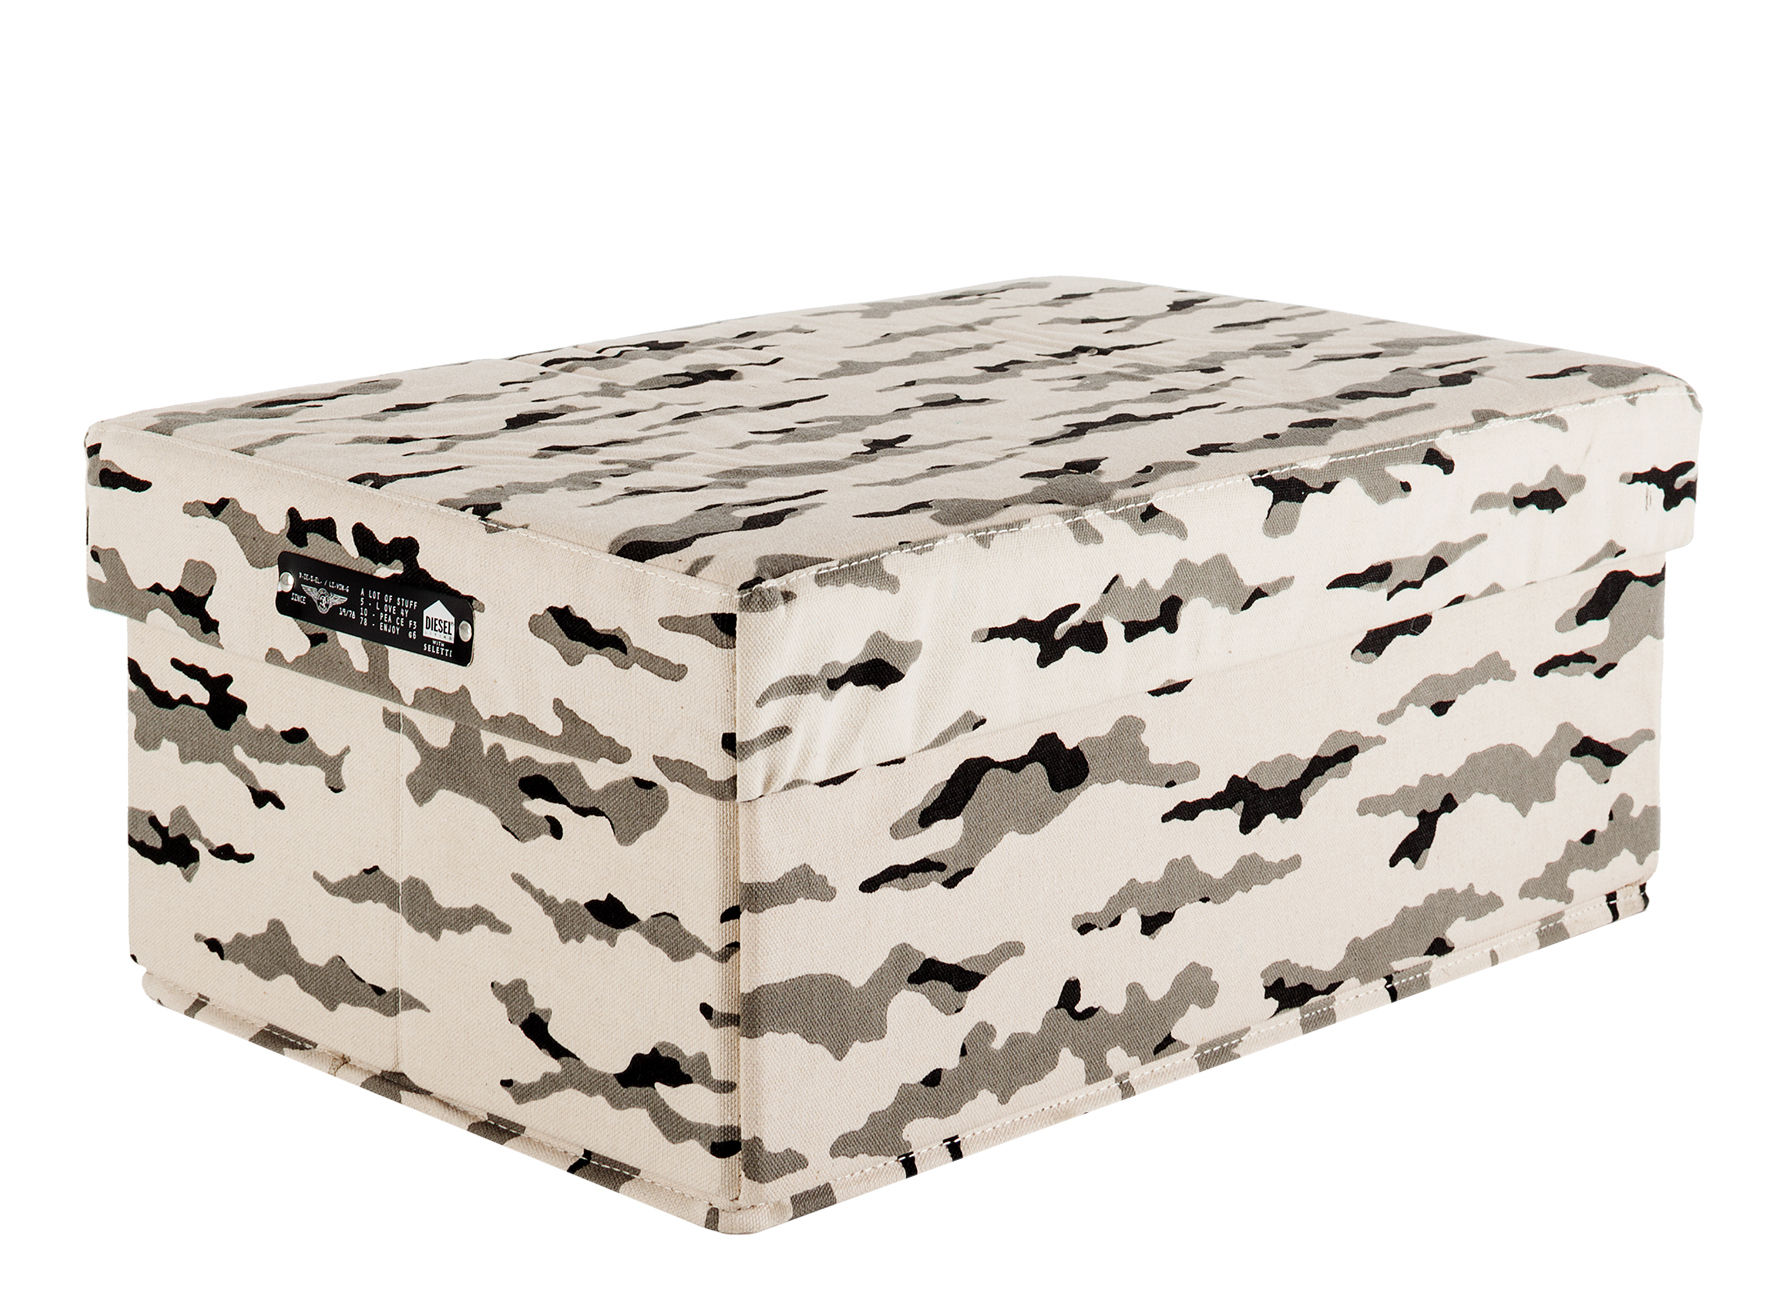 Decoration - Decorative Boxes - Soft Box - / Fabric - L 31 x H 19 cm by Diesel living with Seletti - Pastel pink camouflage - Cardboard, Nylon